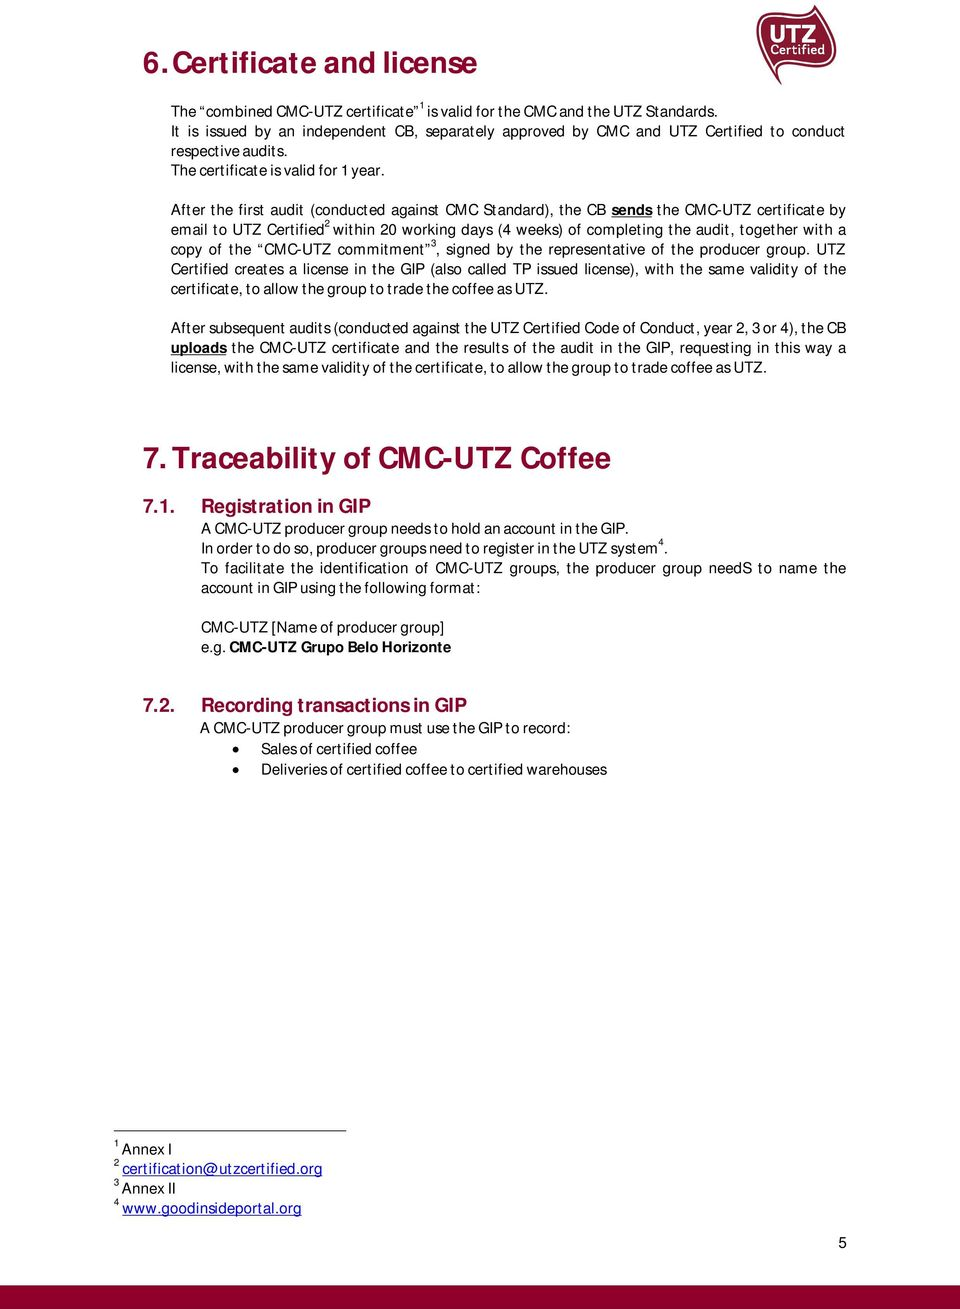 After the first audit (conducted against CMC Standard), the CB sends the CMC-UTZ certificate by email to UTZ Certified 2 within 20 working days (4 weeks) of completing the audit, together with a copy